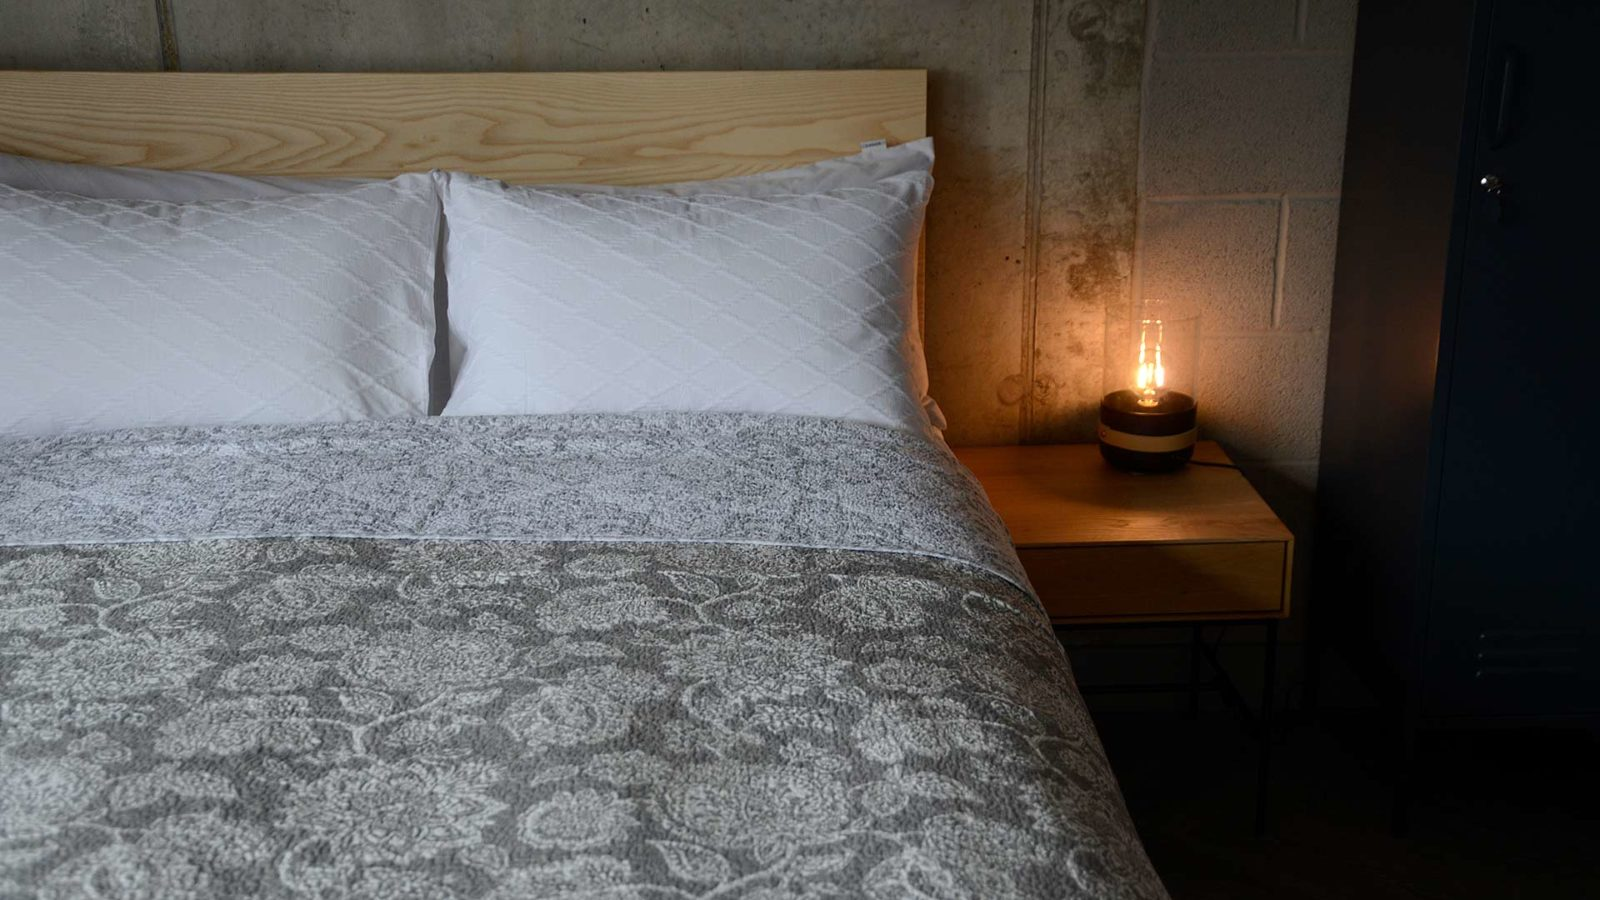 classic quilted bedspread with a grey and white floral pattern